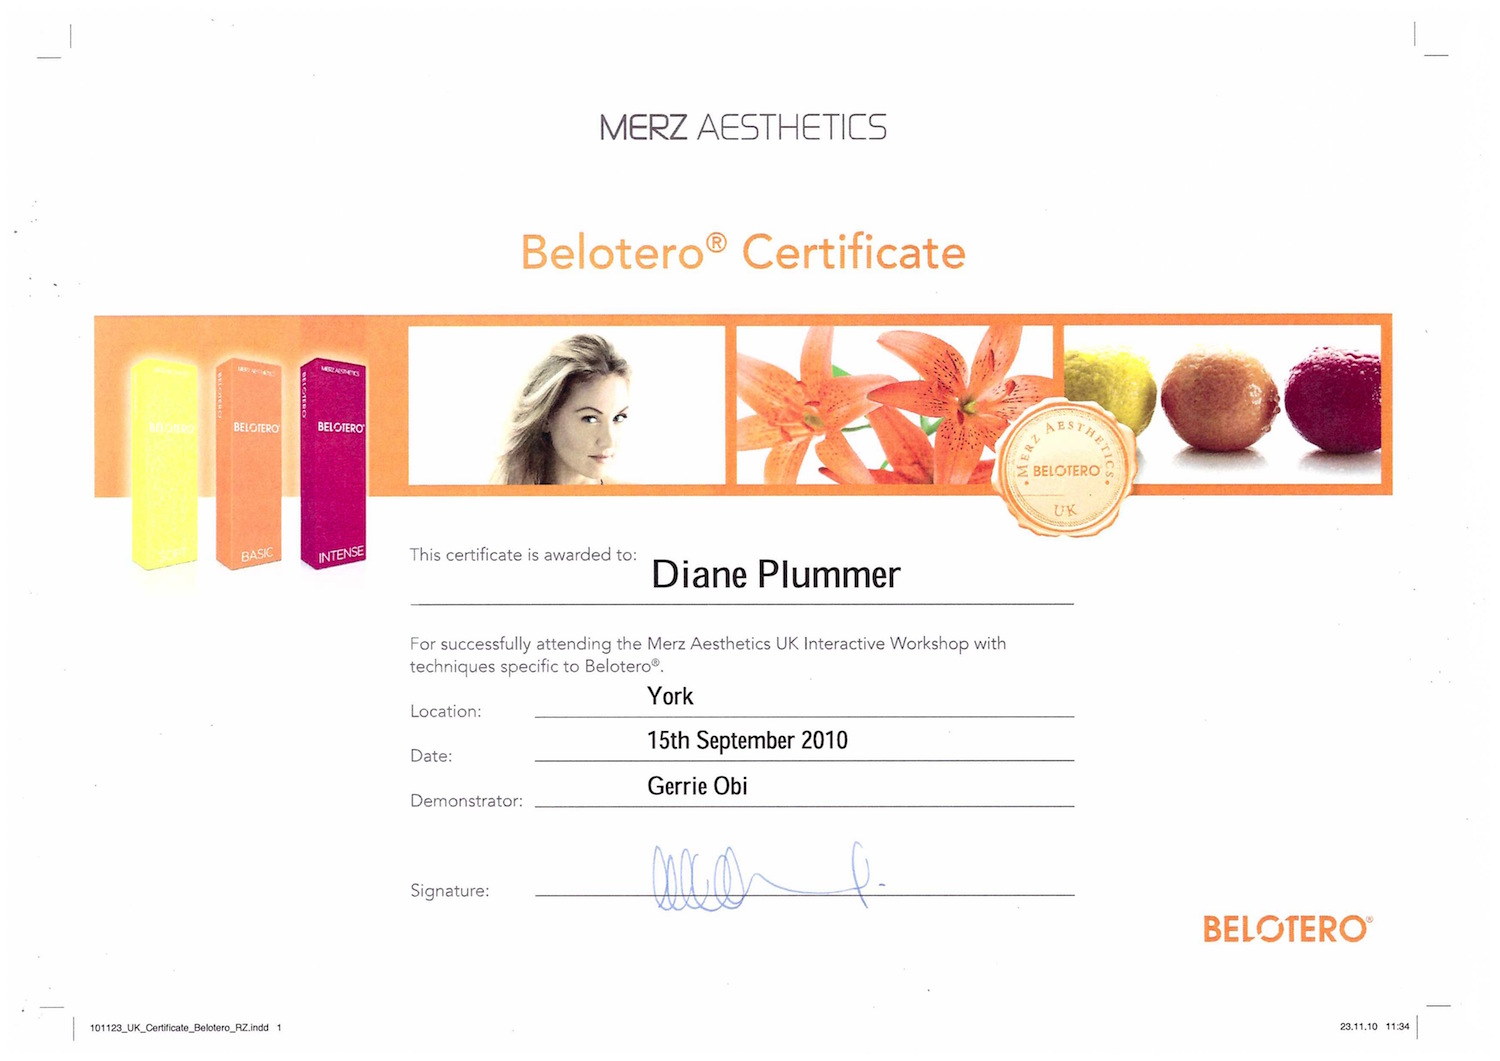 Belotero certification awarded to Diane Plummer Revive Aesthetics